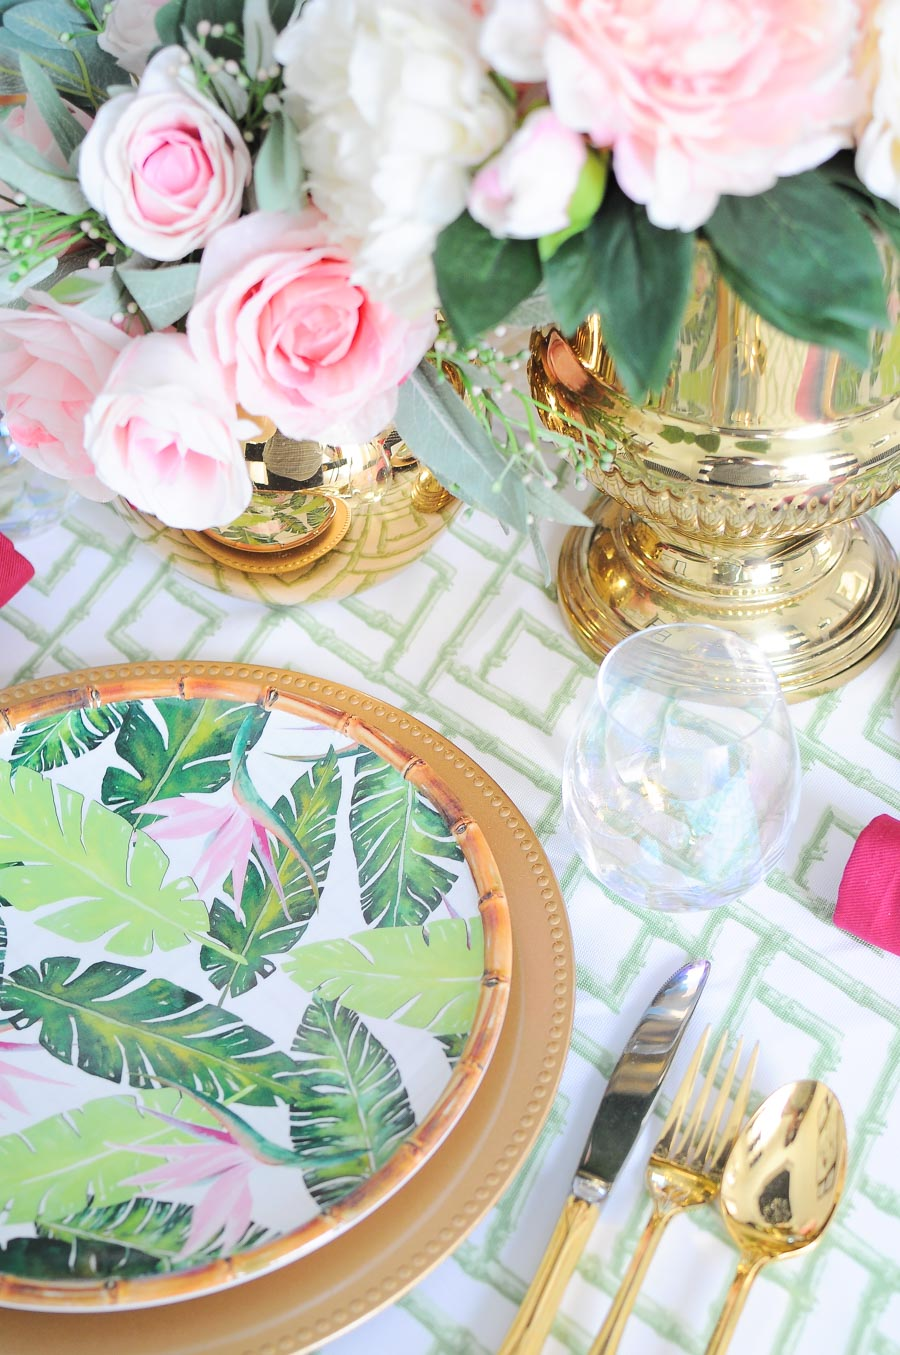 A Palm Beach and chinoiserie inspired table and centerpiece design for a small space.The bamboo, peonies and gold flatware are perfection.